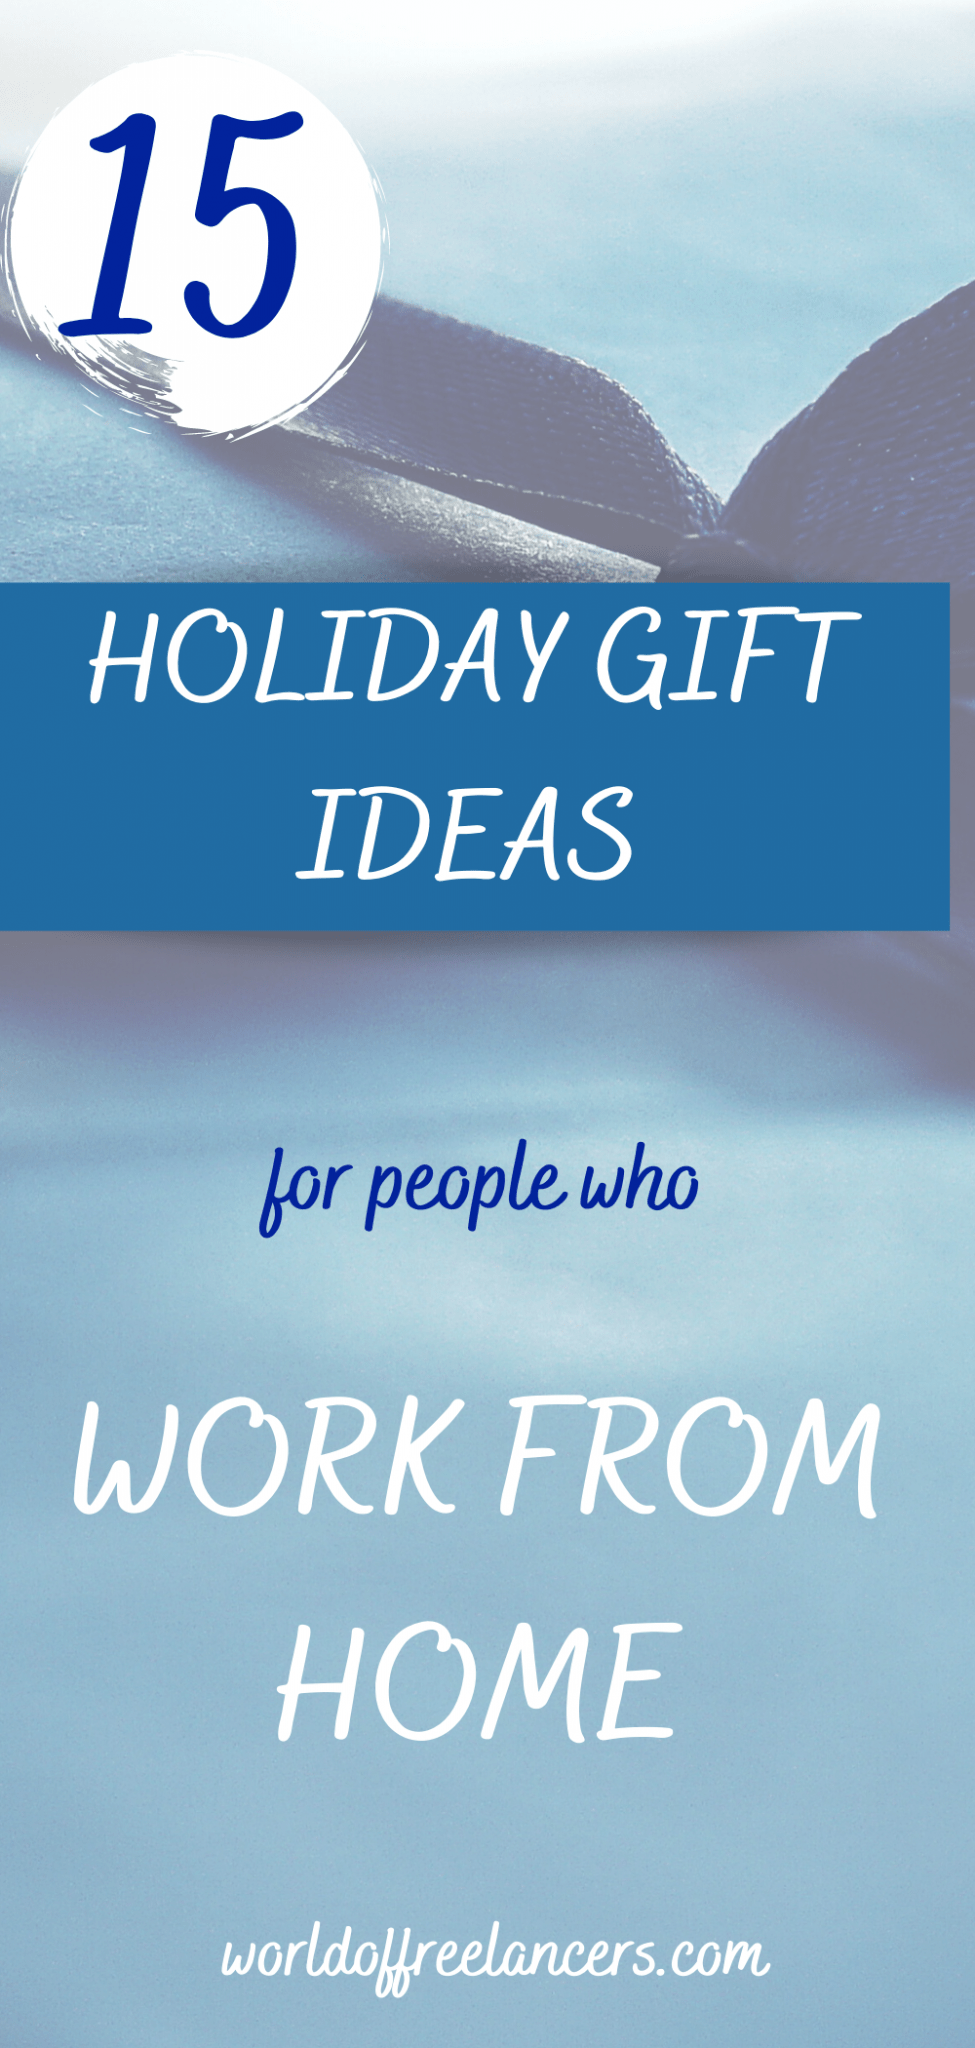 15 Holiday Gift Ideas for People Who Work from Home